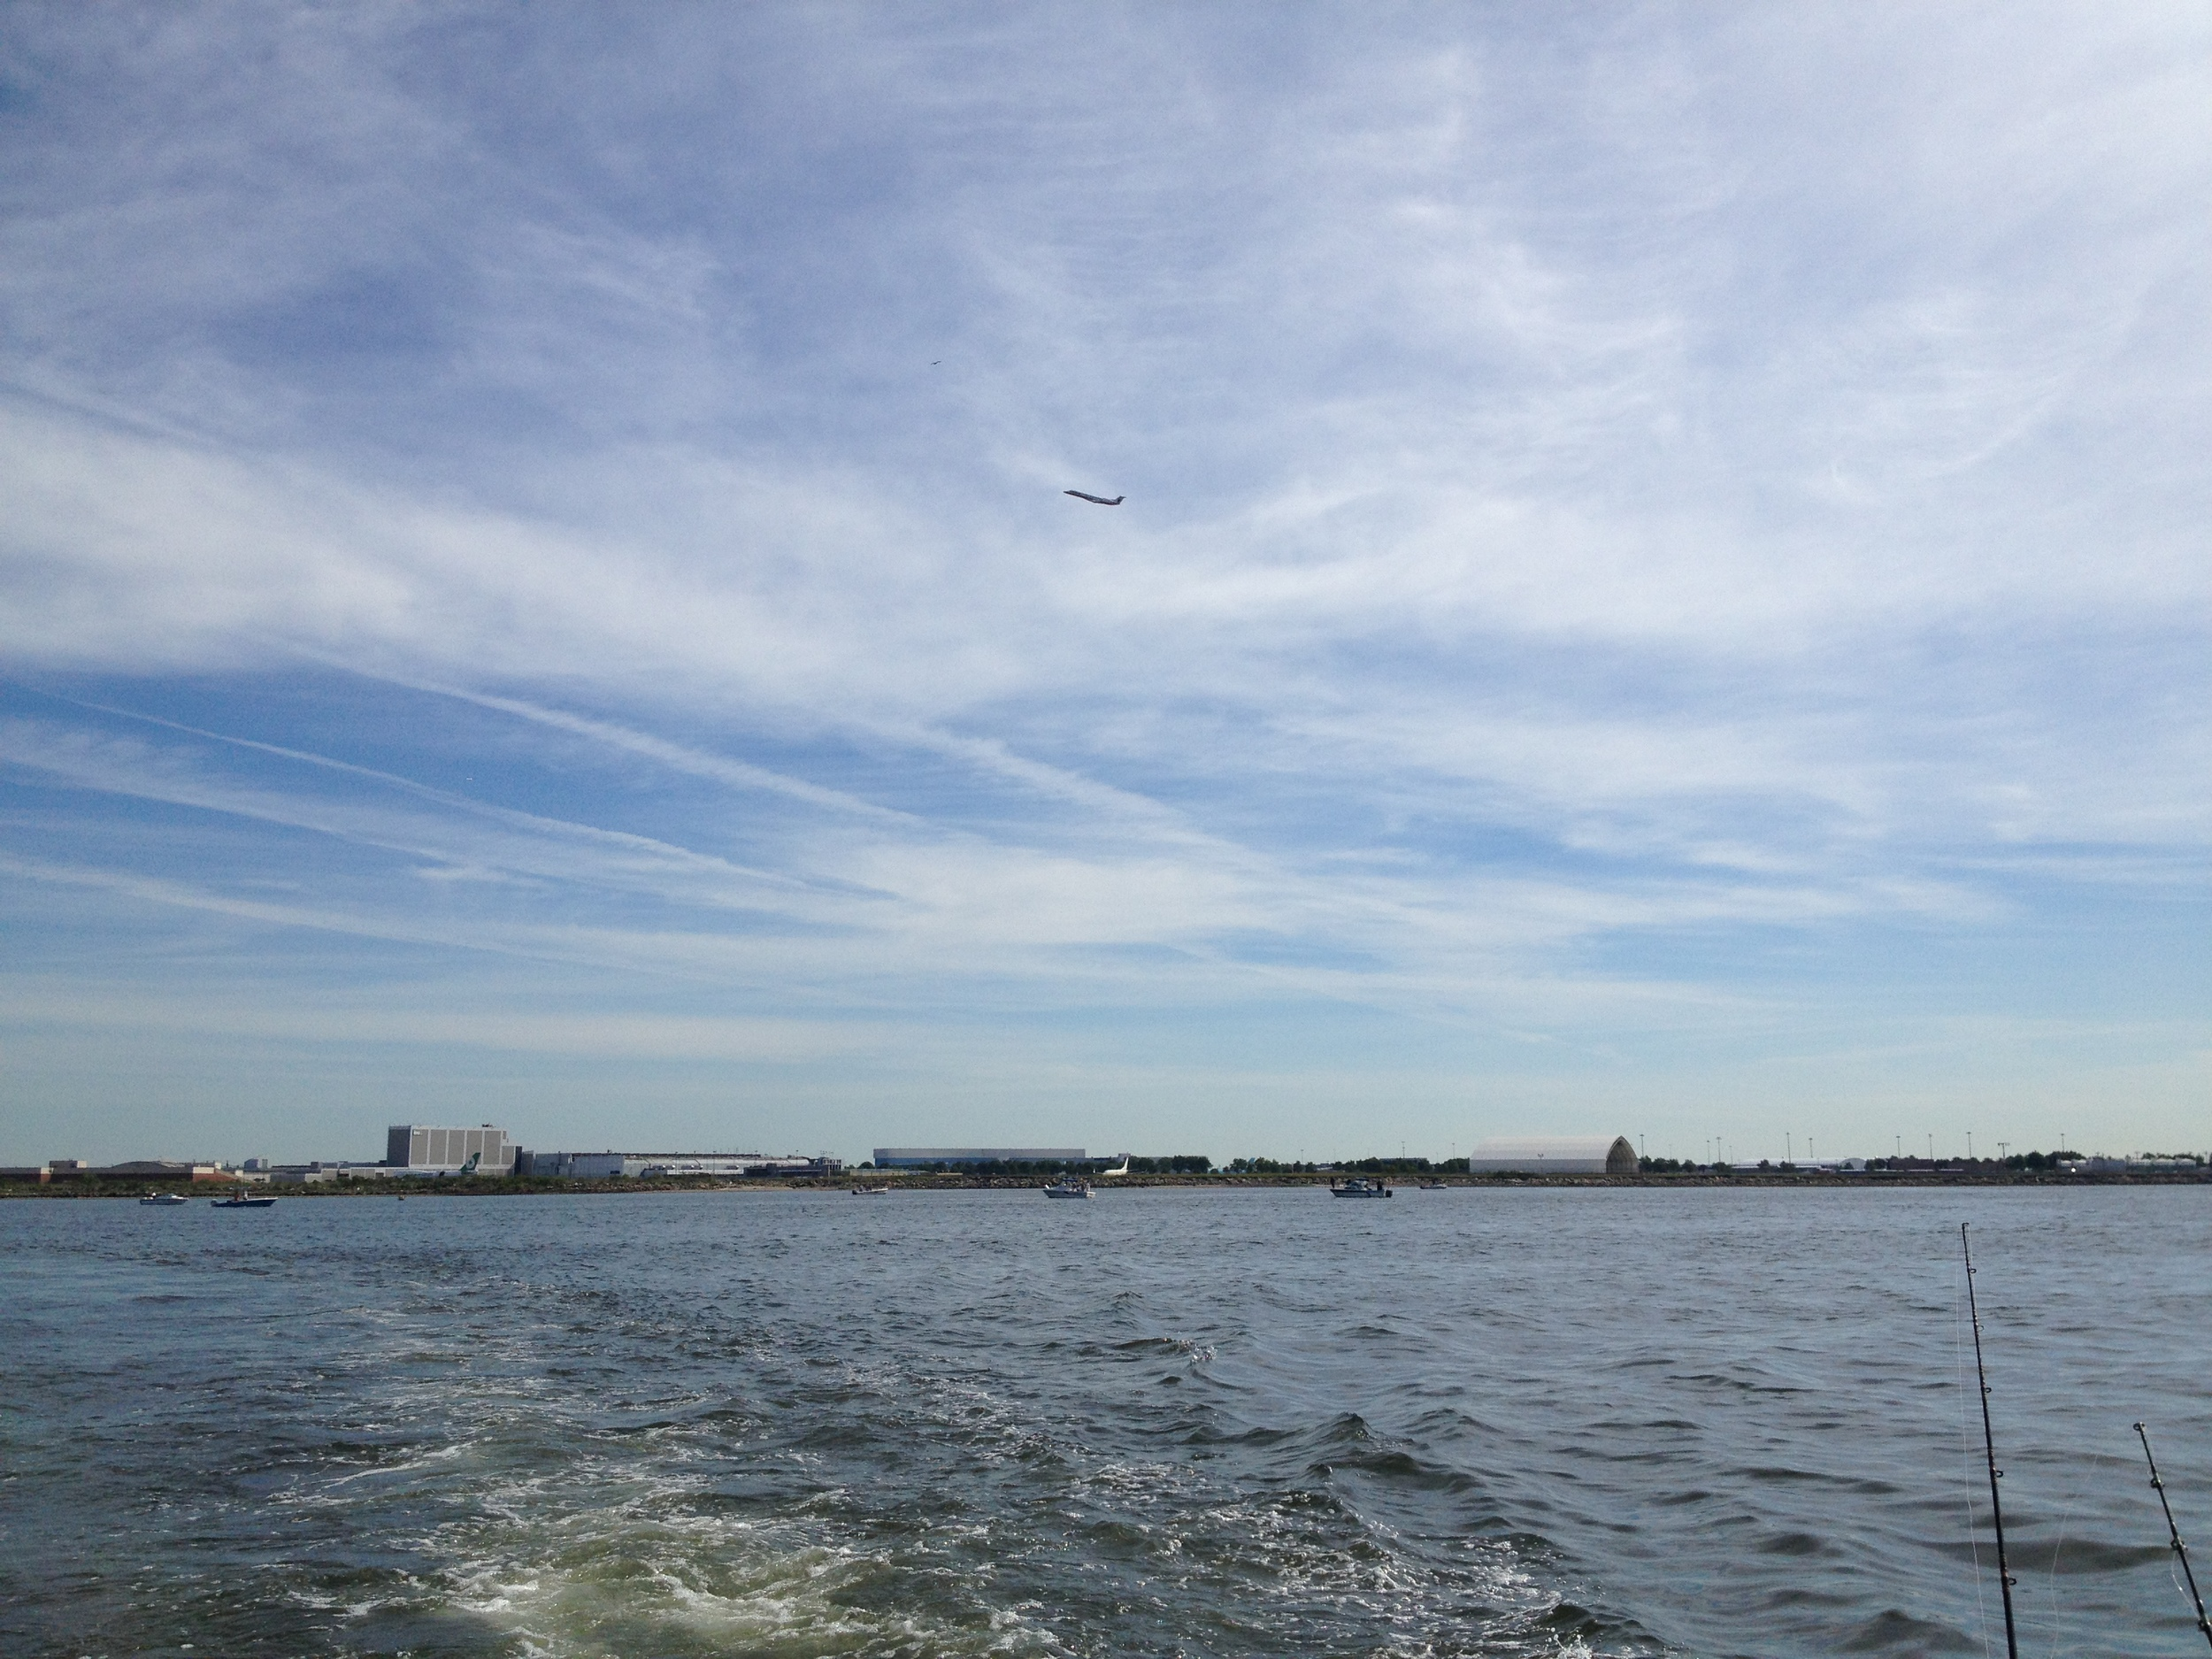 After a long morning of fishing, the getaway - with a suitable metaphor soaring into the clear blue sky over JFK.